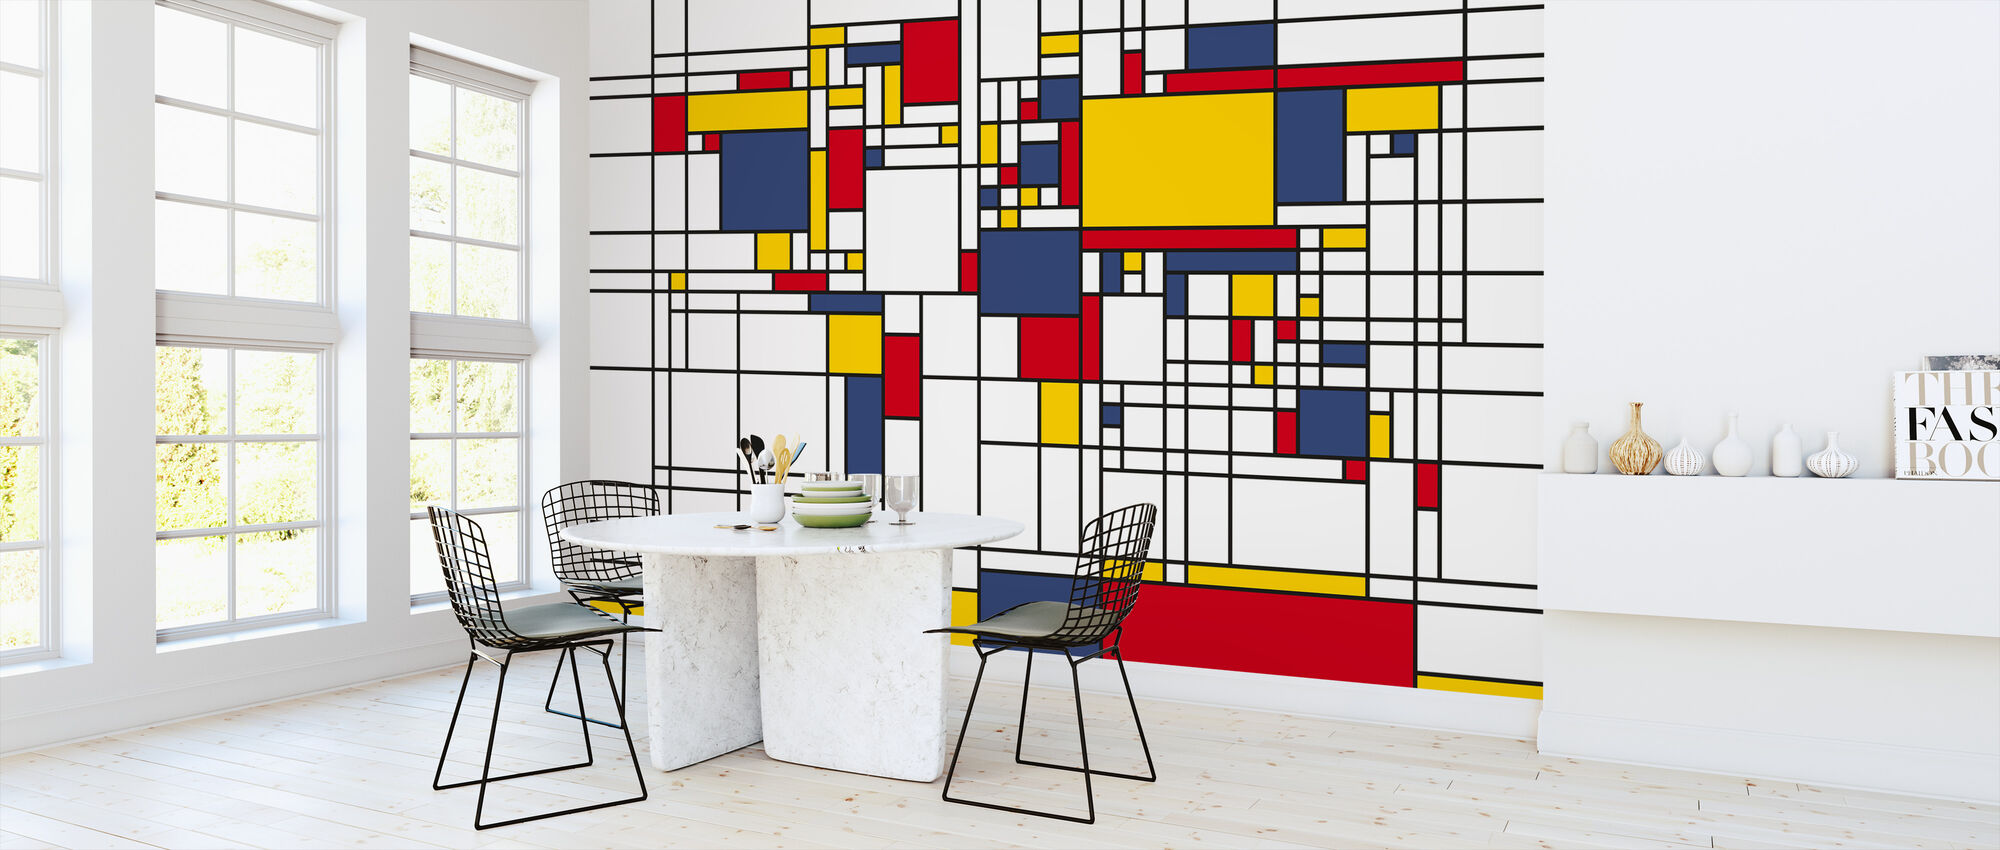 Piet Mondrian Style World Map - Wallpaper - Kitchen